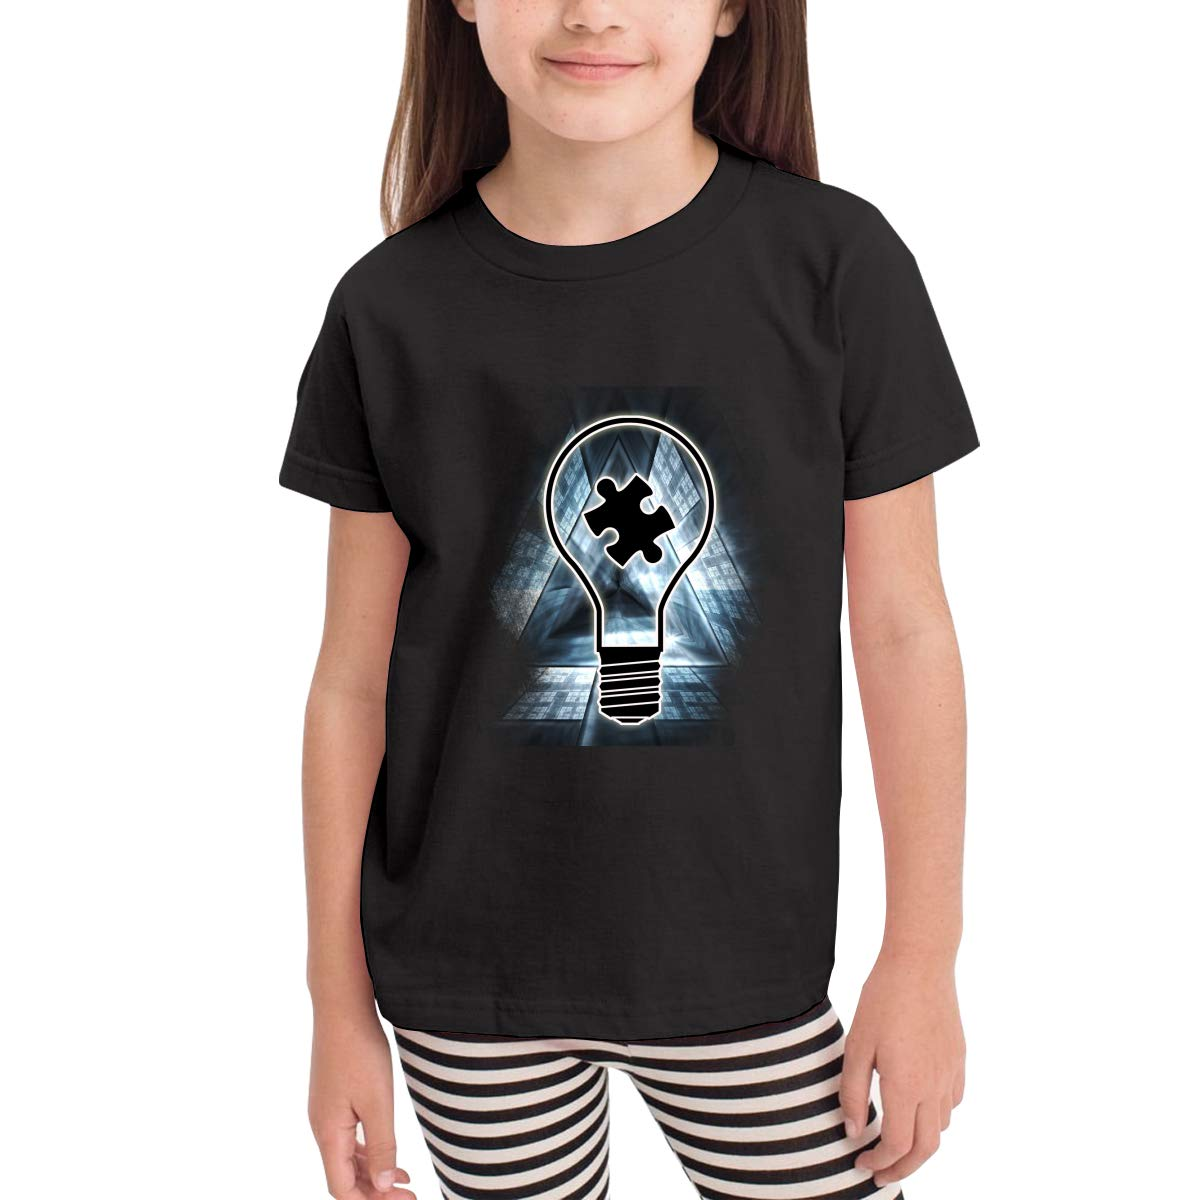 Onlybabycare Lightbulb Autism Awareness 100/% Cotton Toddler Baby Boys Girls Kids Short Sleeve T Shirt Top Tee Clothes 2-6 T